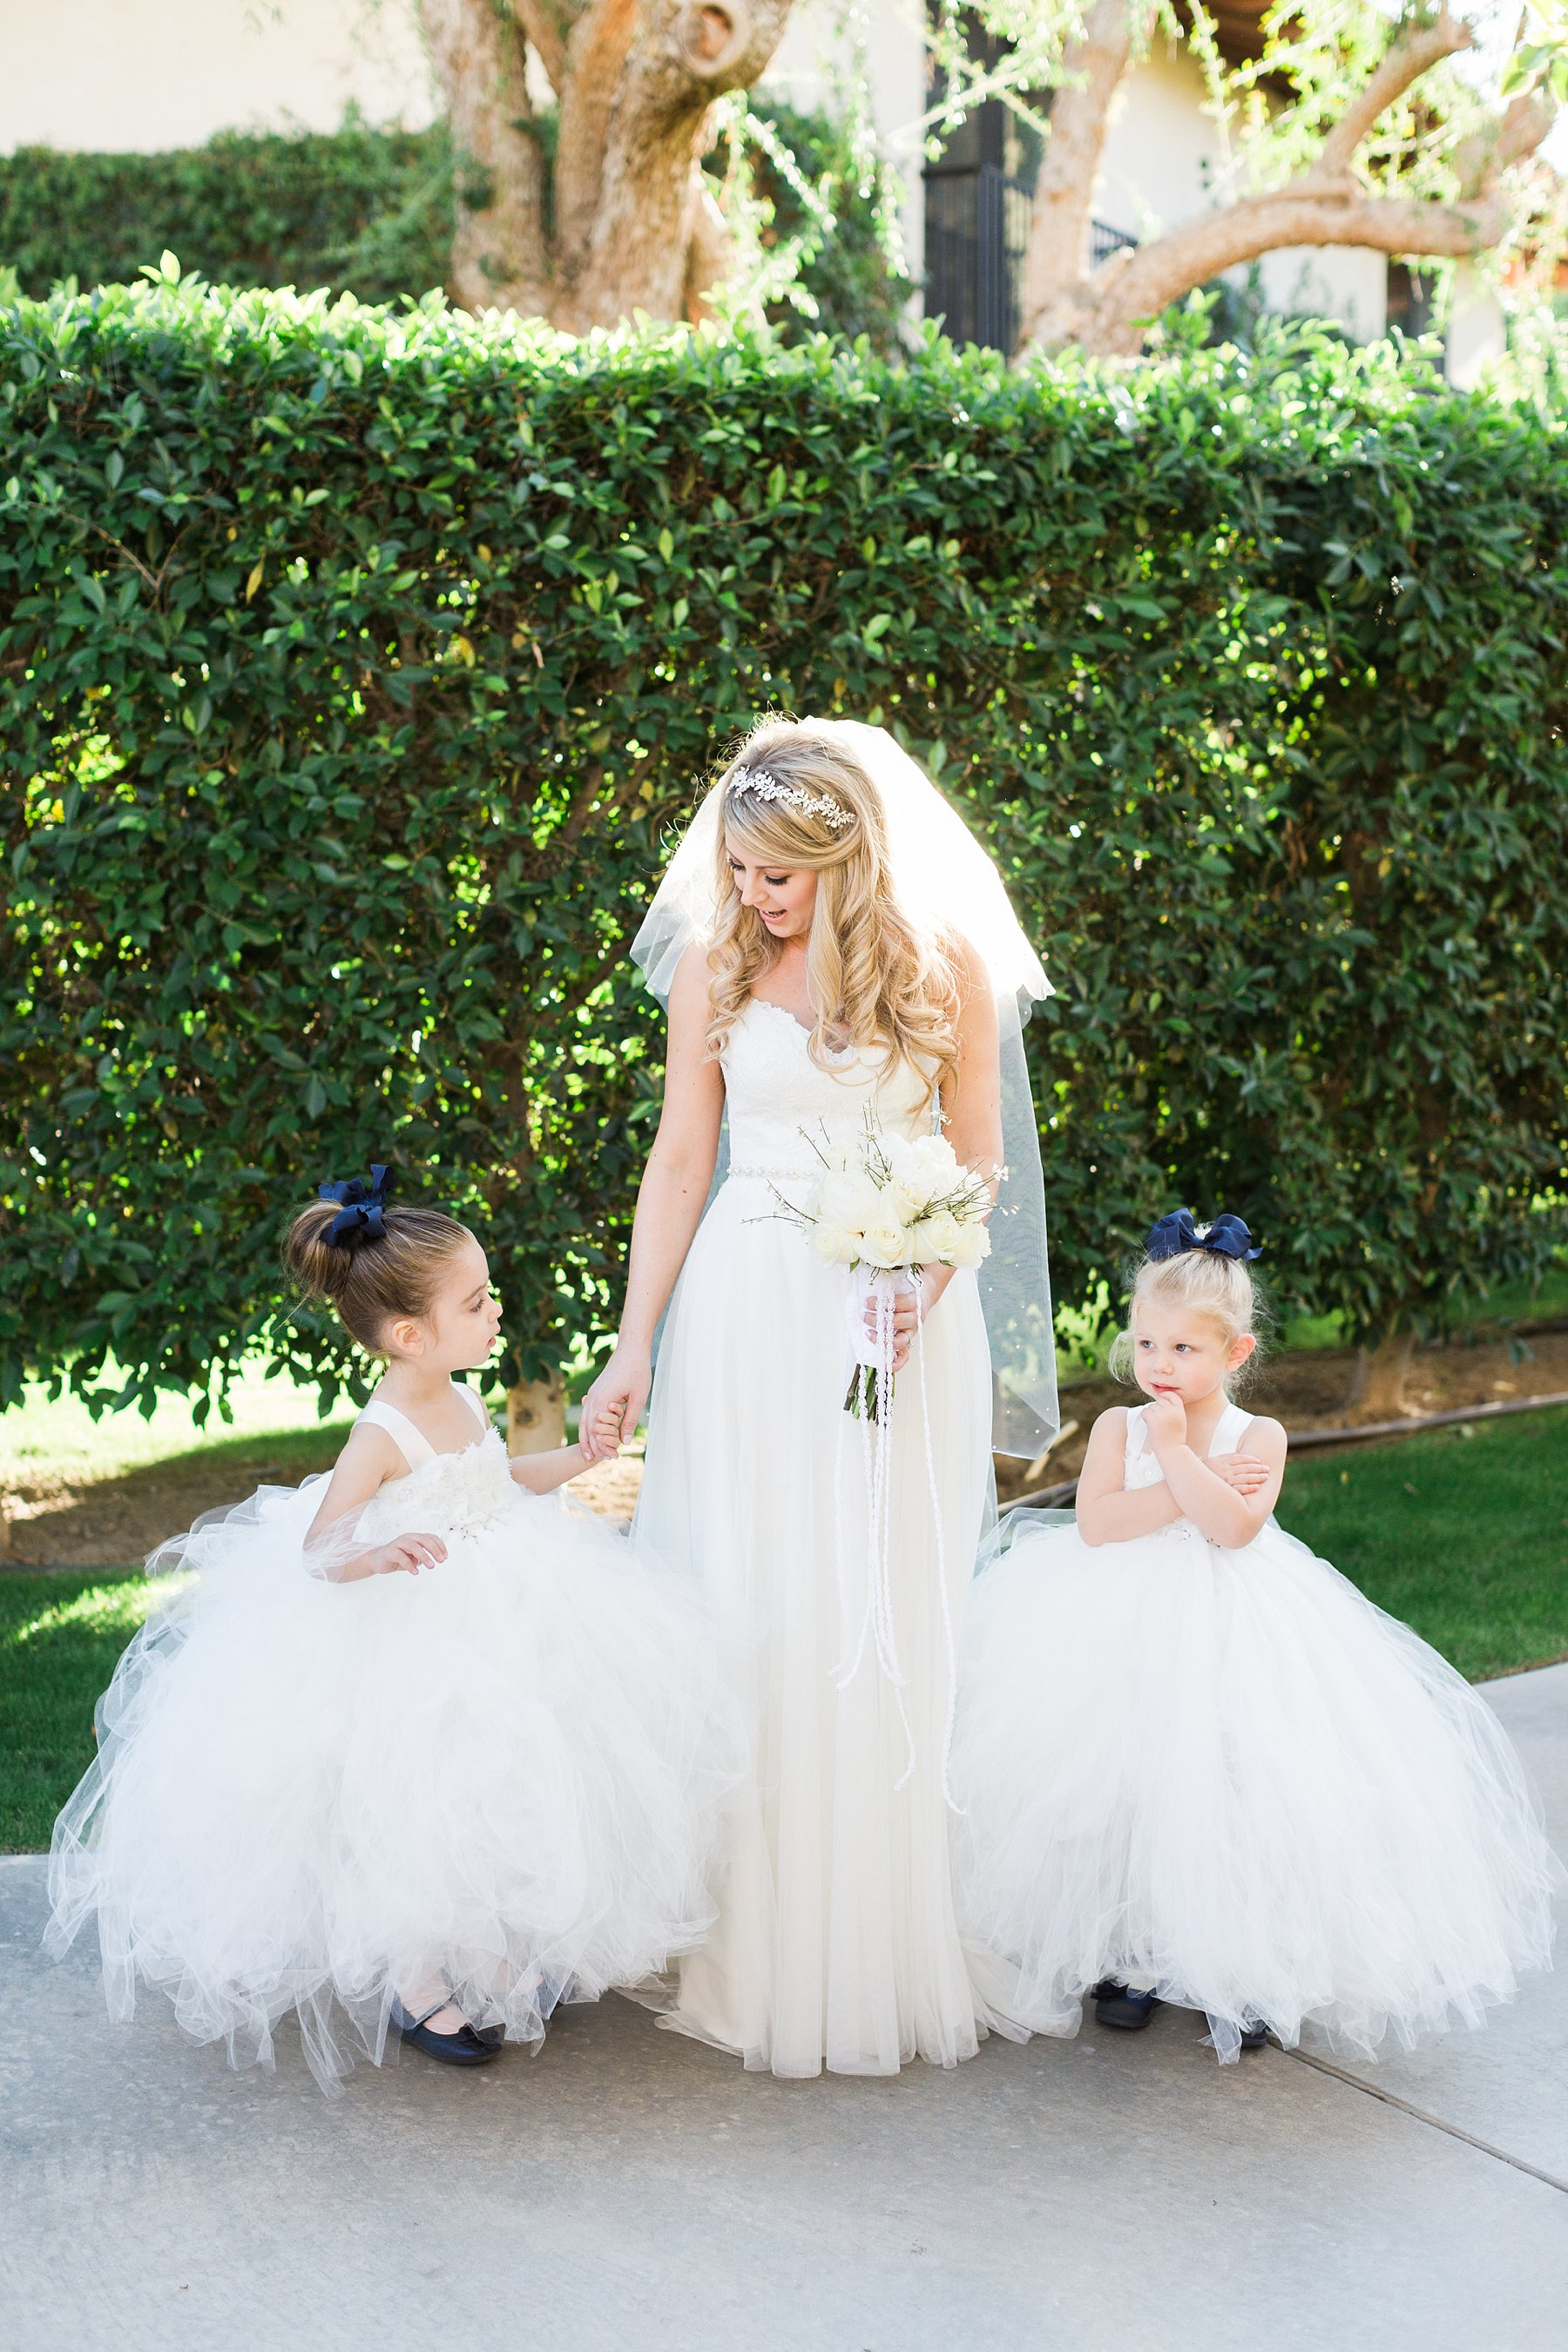 Bride and flower girls in puffy dresses